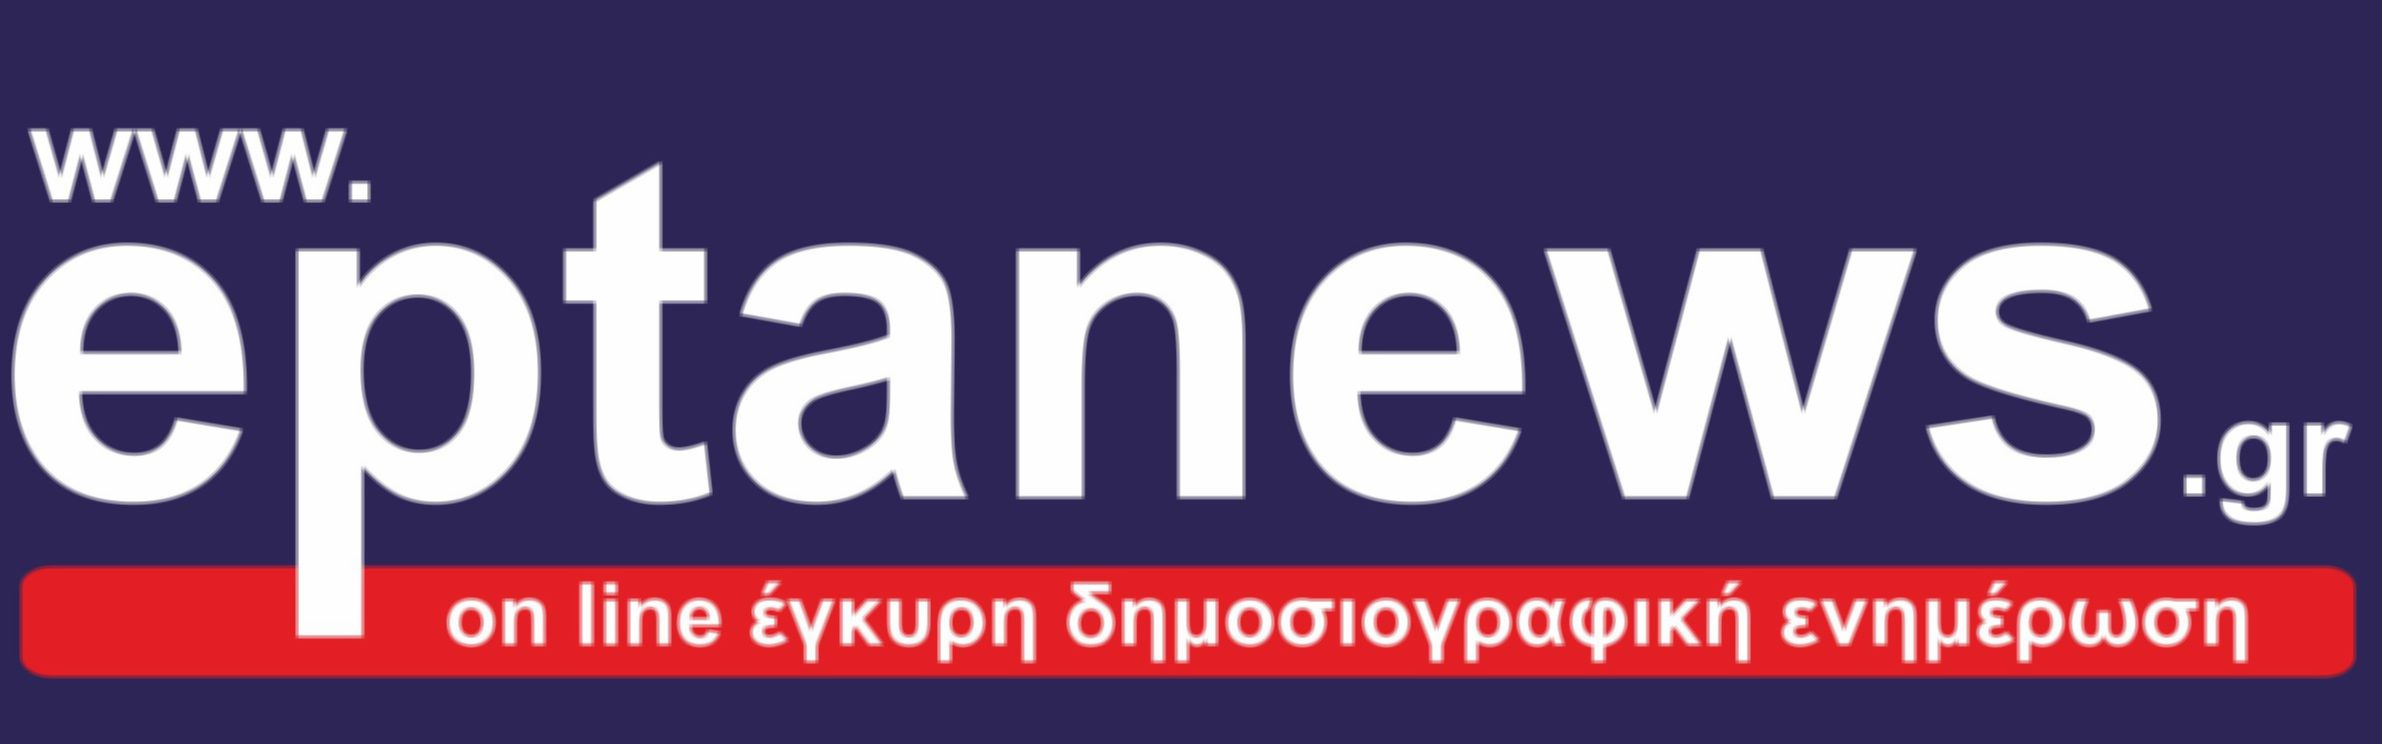 Eptanews.gr